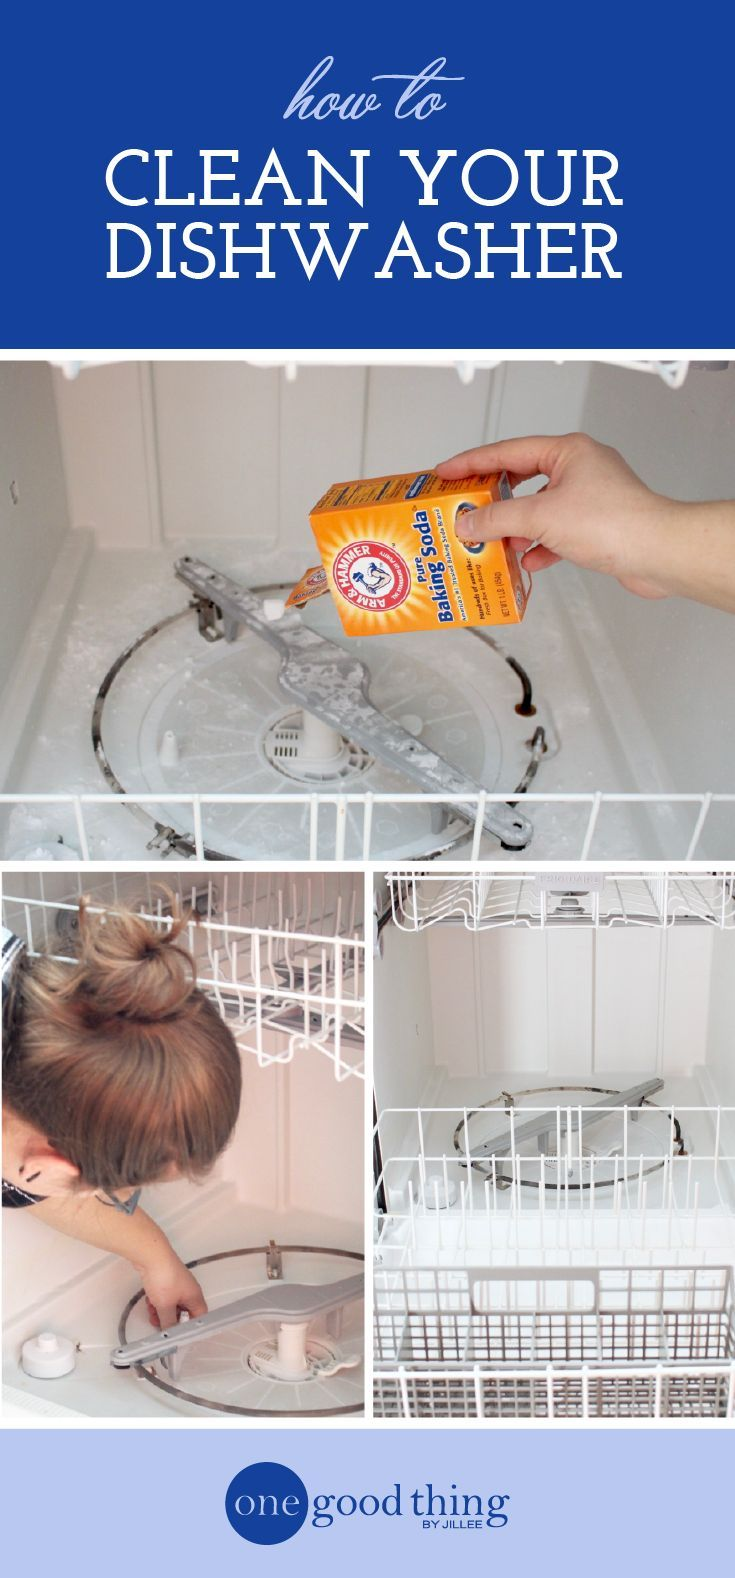 How To Clean Your Dishwasher In 3 Easy Steps Dishwashers